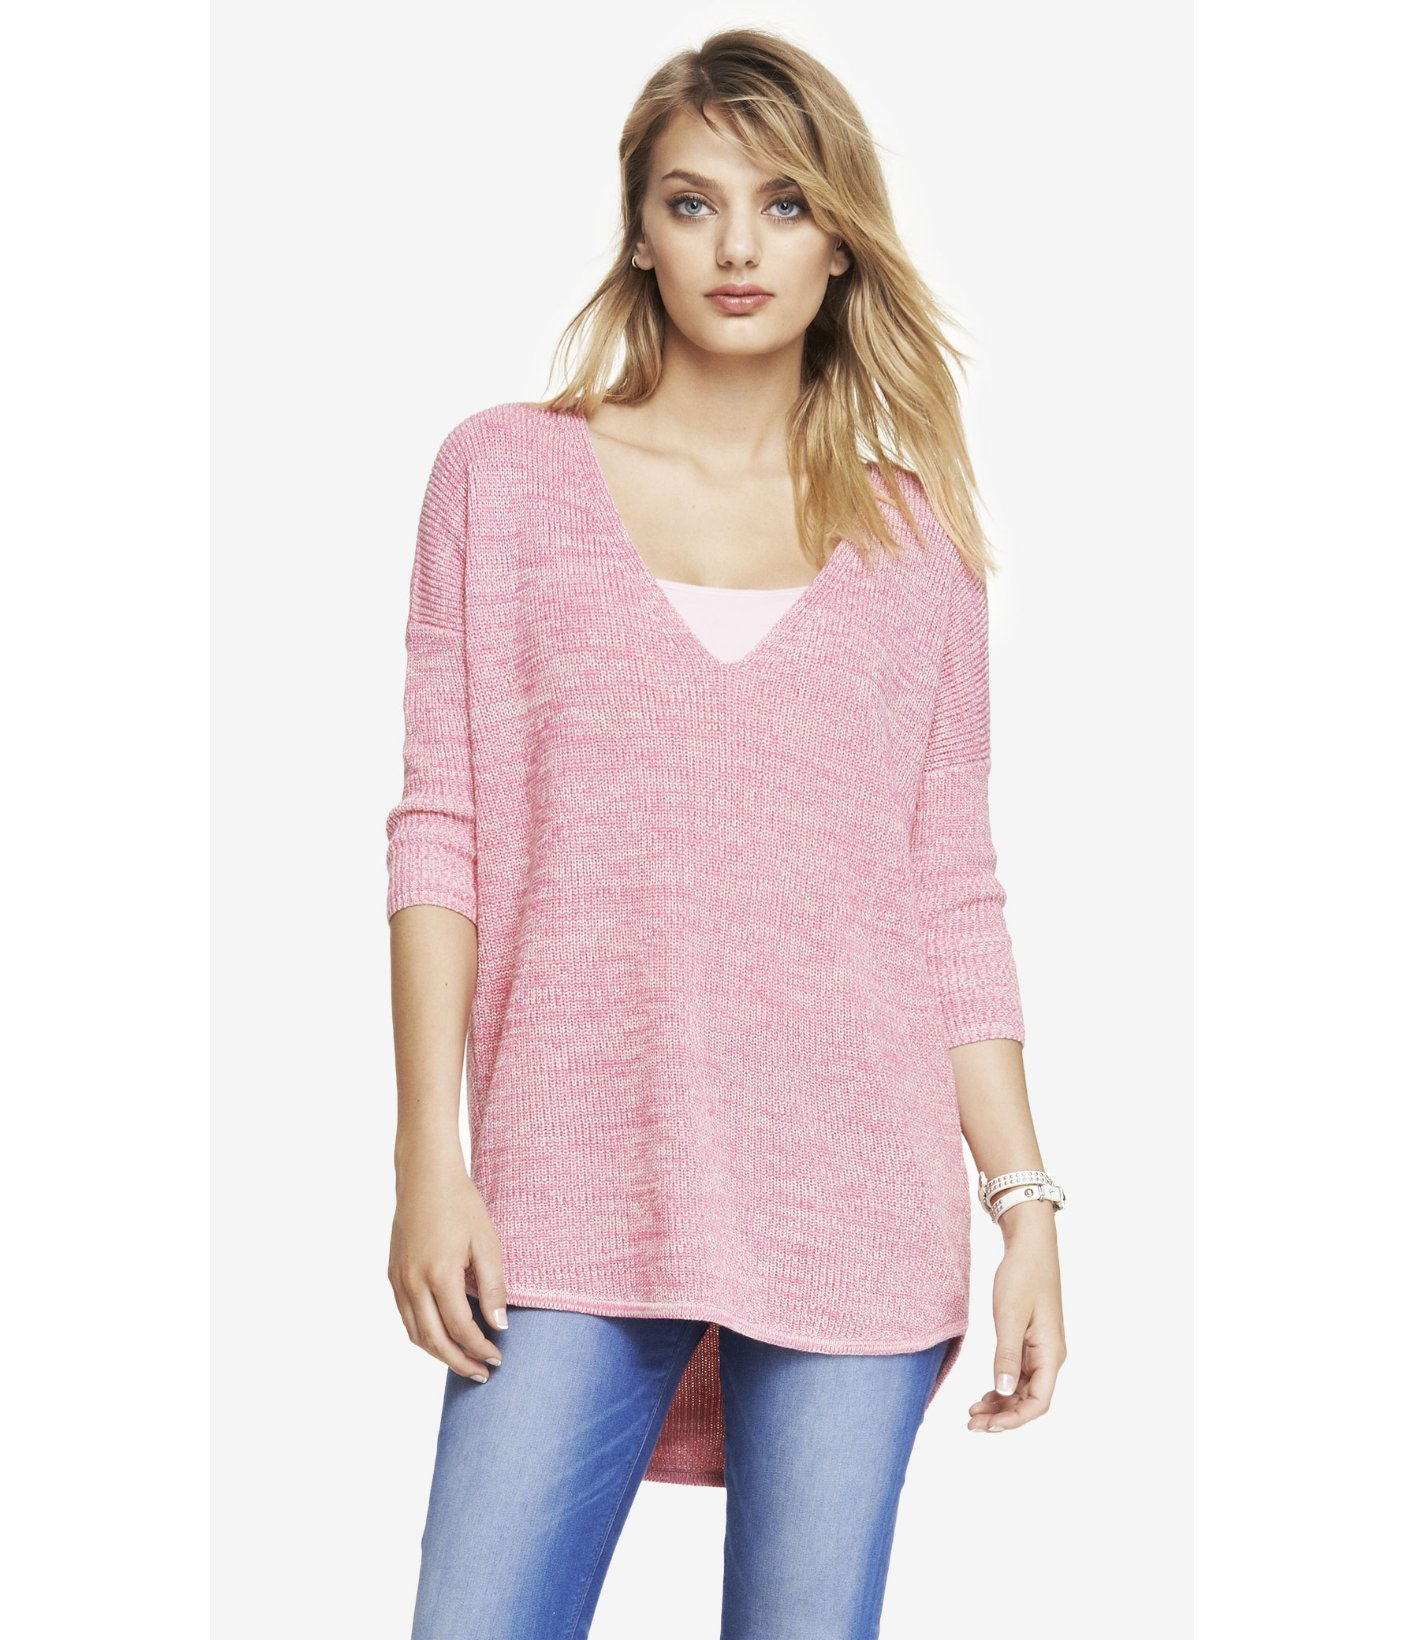 Express Marled London Sweater in Pink | Lyst